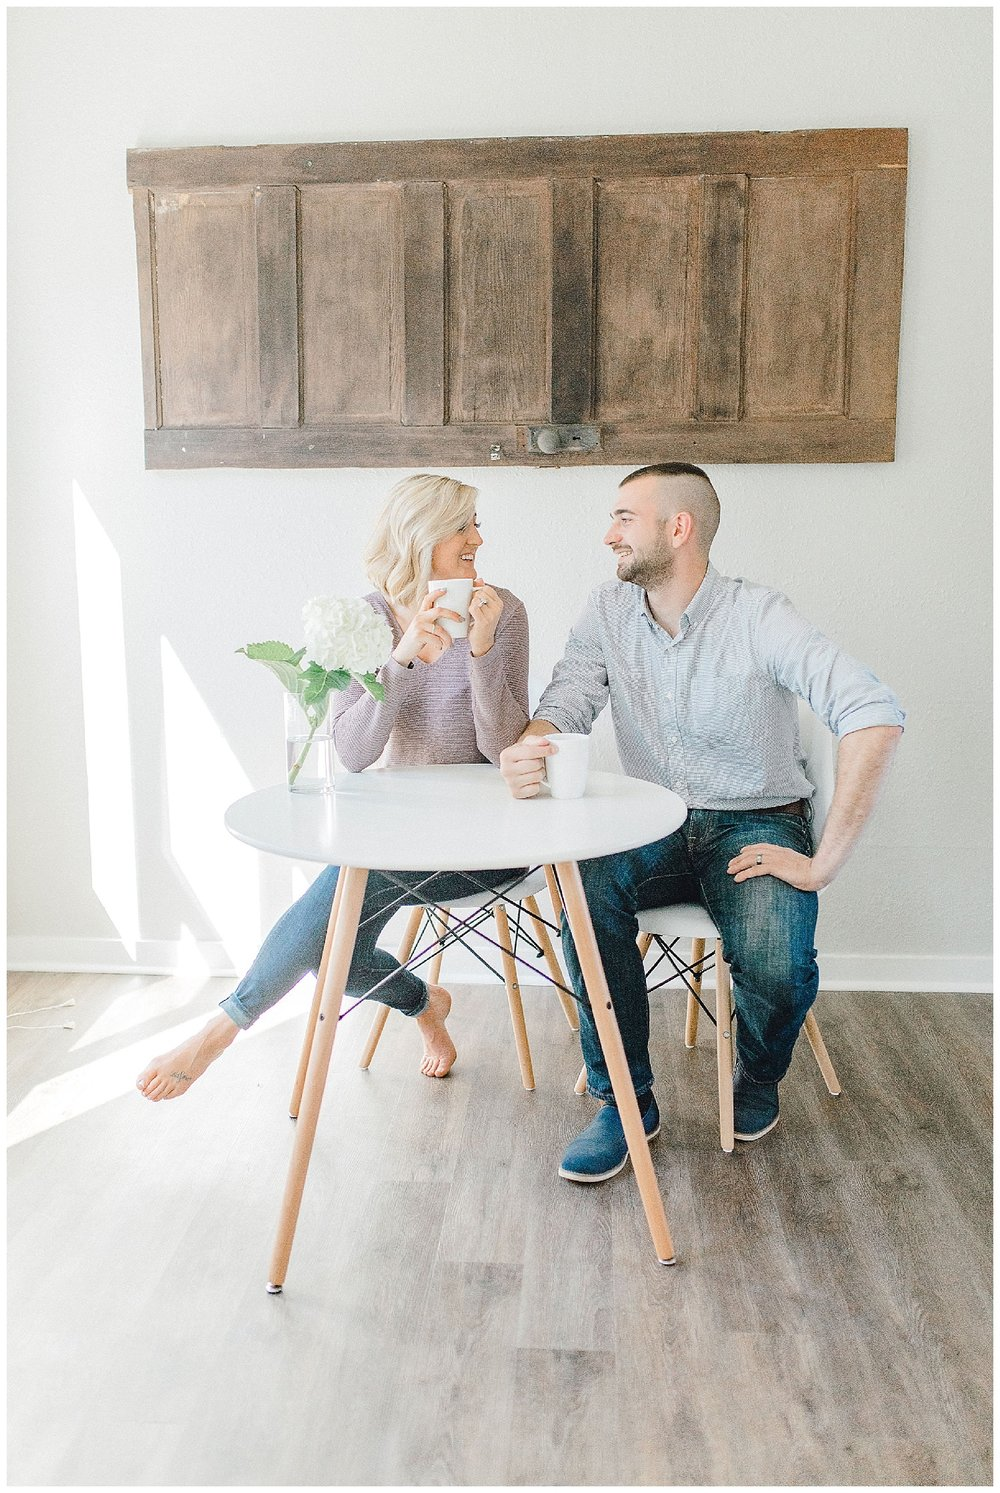 Emma Rose Company Branded Lifestyle Session | Seiler Home Group Real Estate Agents | Light and Airy Seattle and Portland Wedding Photographer | Real Estate Photo Shoot_0029.jpg